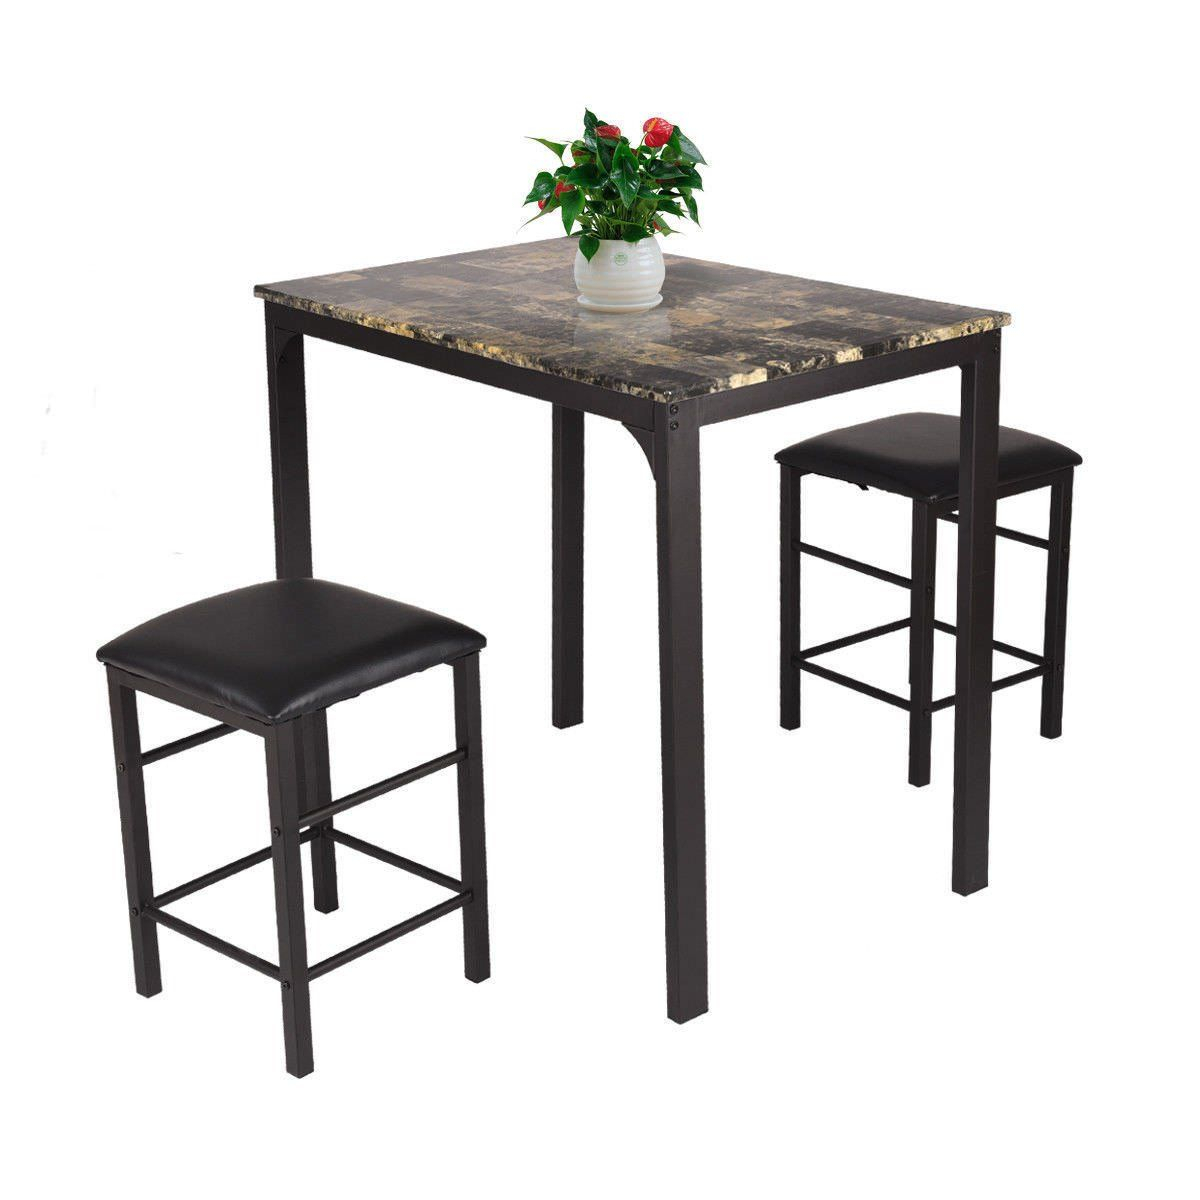 5 Piece Percie Industrial Counter Height Dining Set Oak/black Intended For Most Recently Released Kerley 4 Piece Dining Sets (Image 1 of 20)